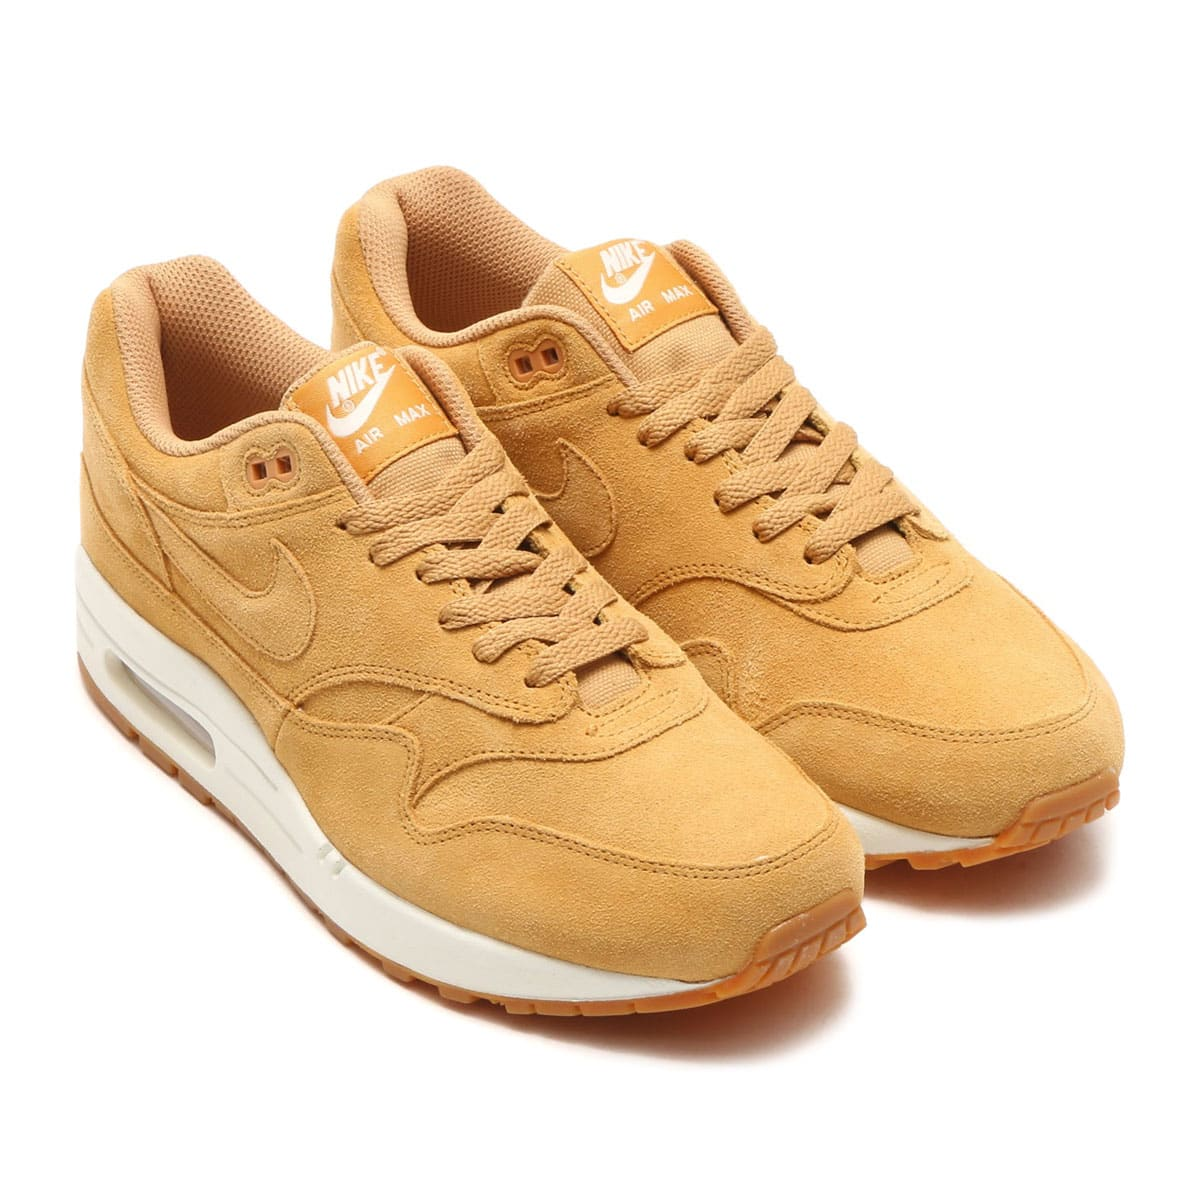 NIKE AIR MAX 1 PREMIUM FLAX/FLAX-SAIL-GUM MED BROWN_photo_large